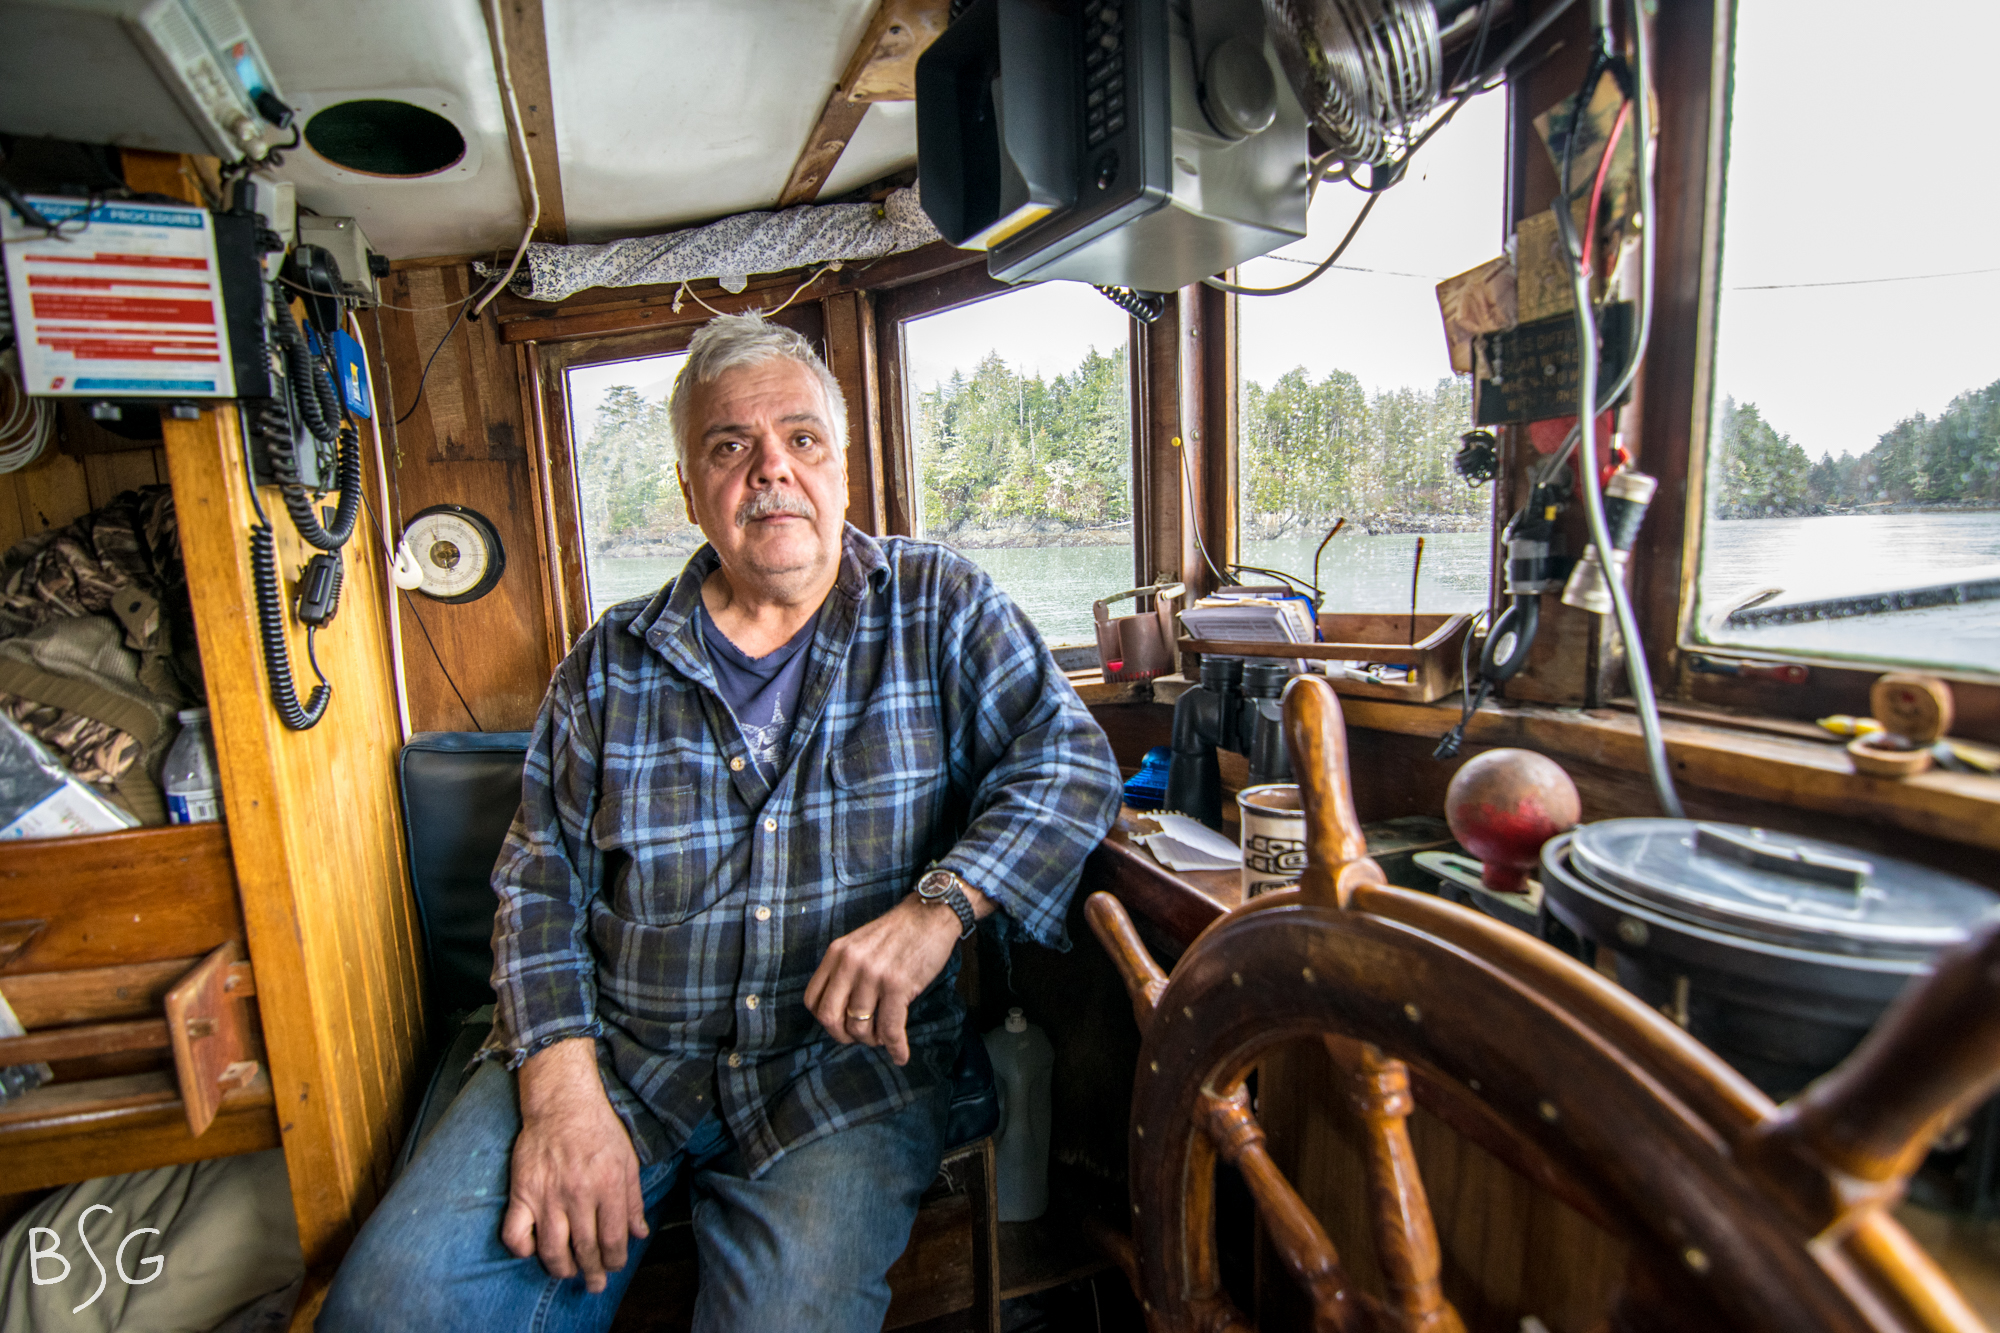 Vernon Hill sits in the wooden wheelhouse of the Shirley N. He and his crew spent nine days in Sitka Sound in April collecting herring eggs on branches to bring back to the community of Hoonah. Sitka Sound is the final remaining stronghold of herring in the region.